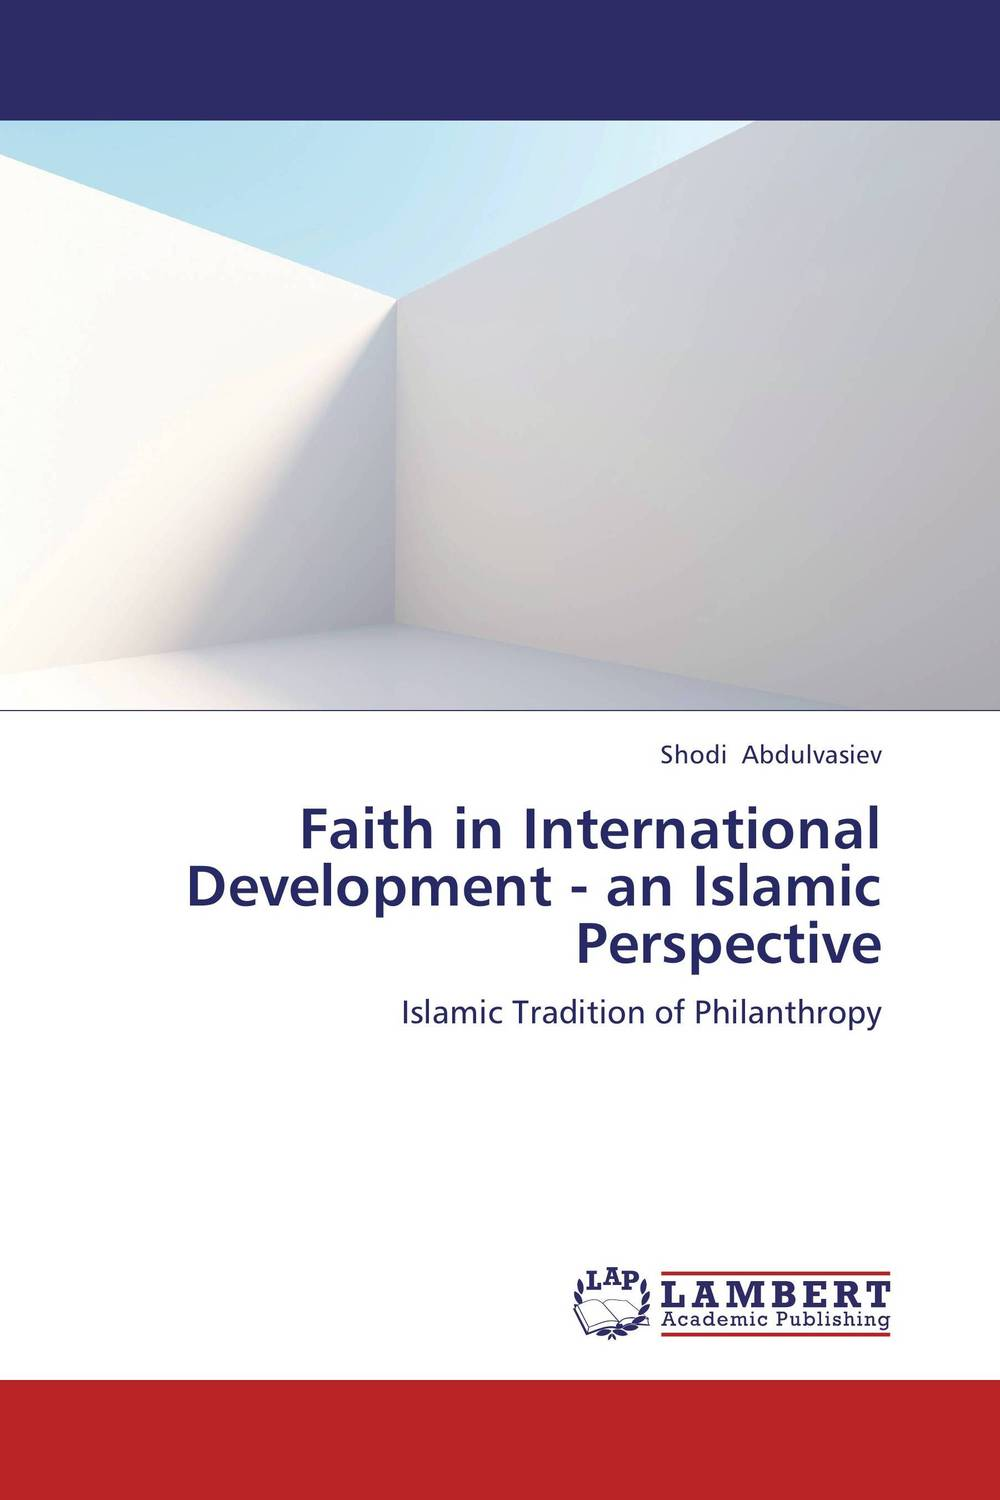 Faith in International Development - an Islamic Perspective fundamentals of physics extended 9th edition international student version with wileyplus set